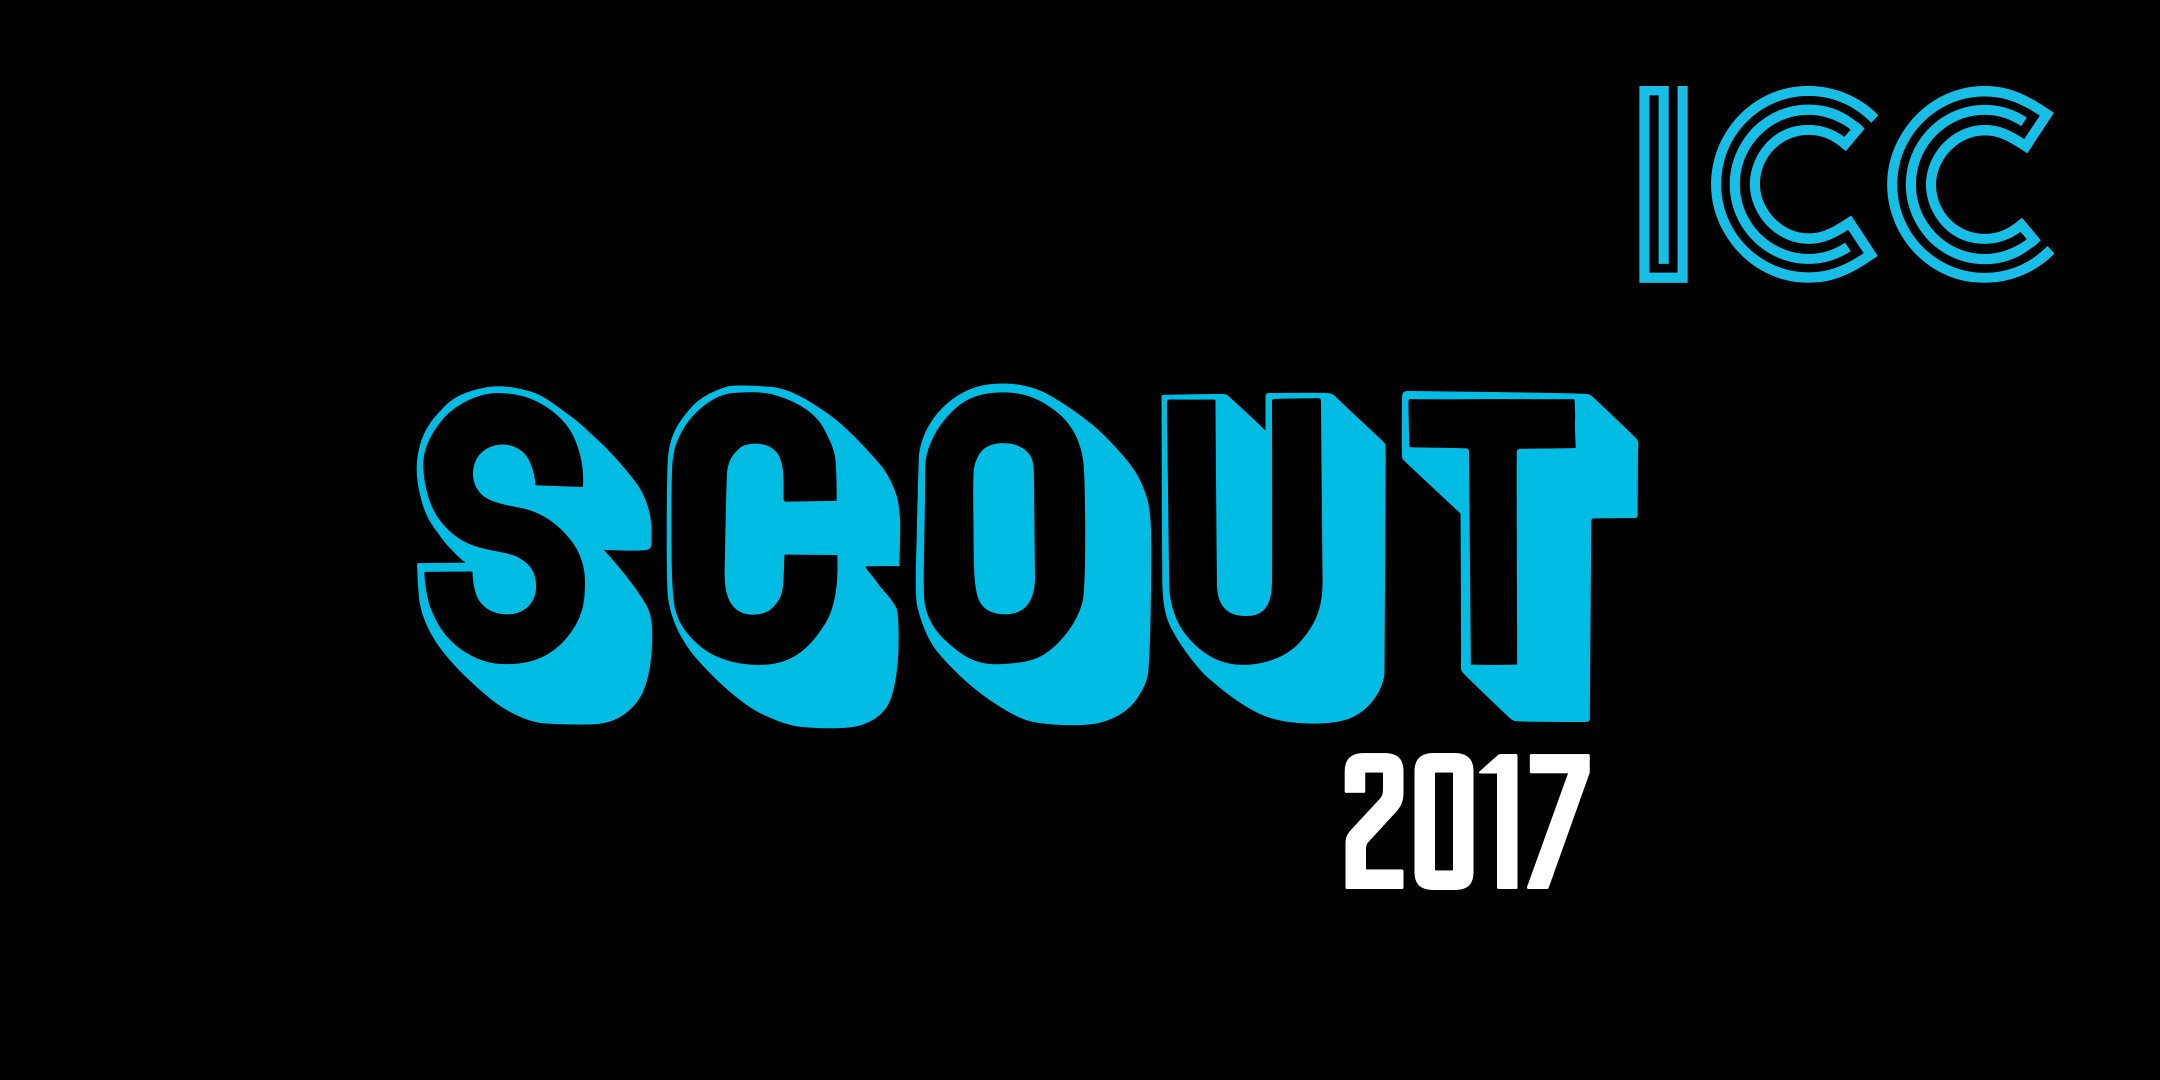 SCOUT 2017